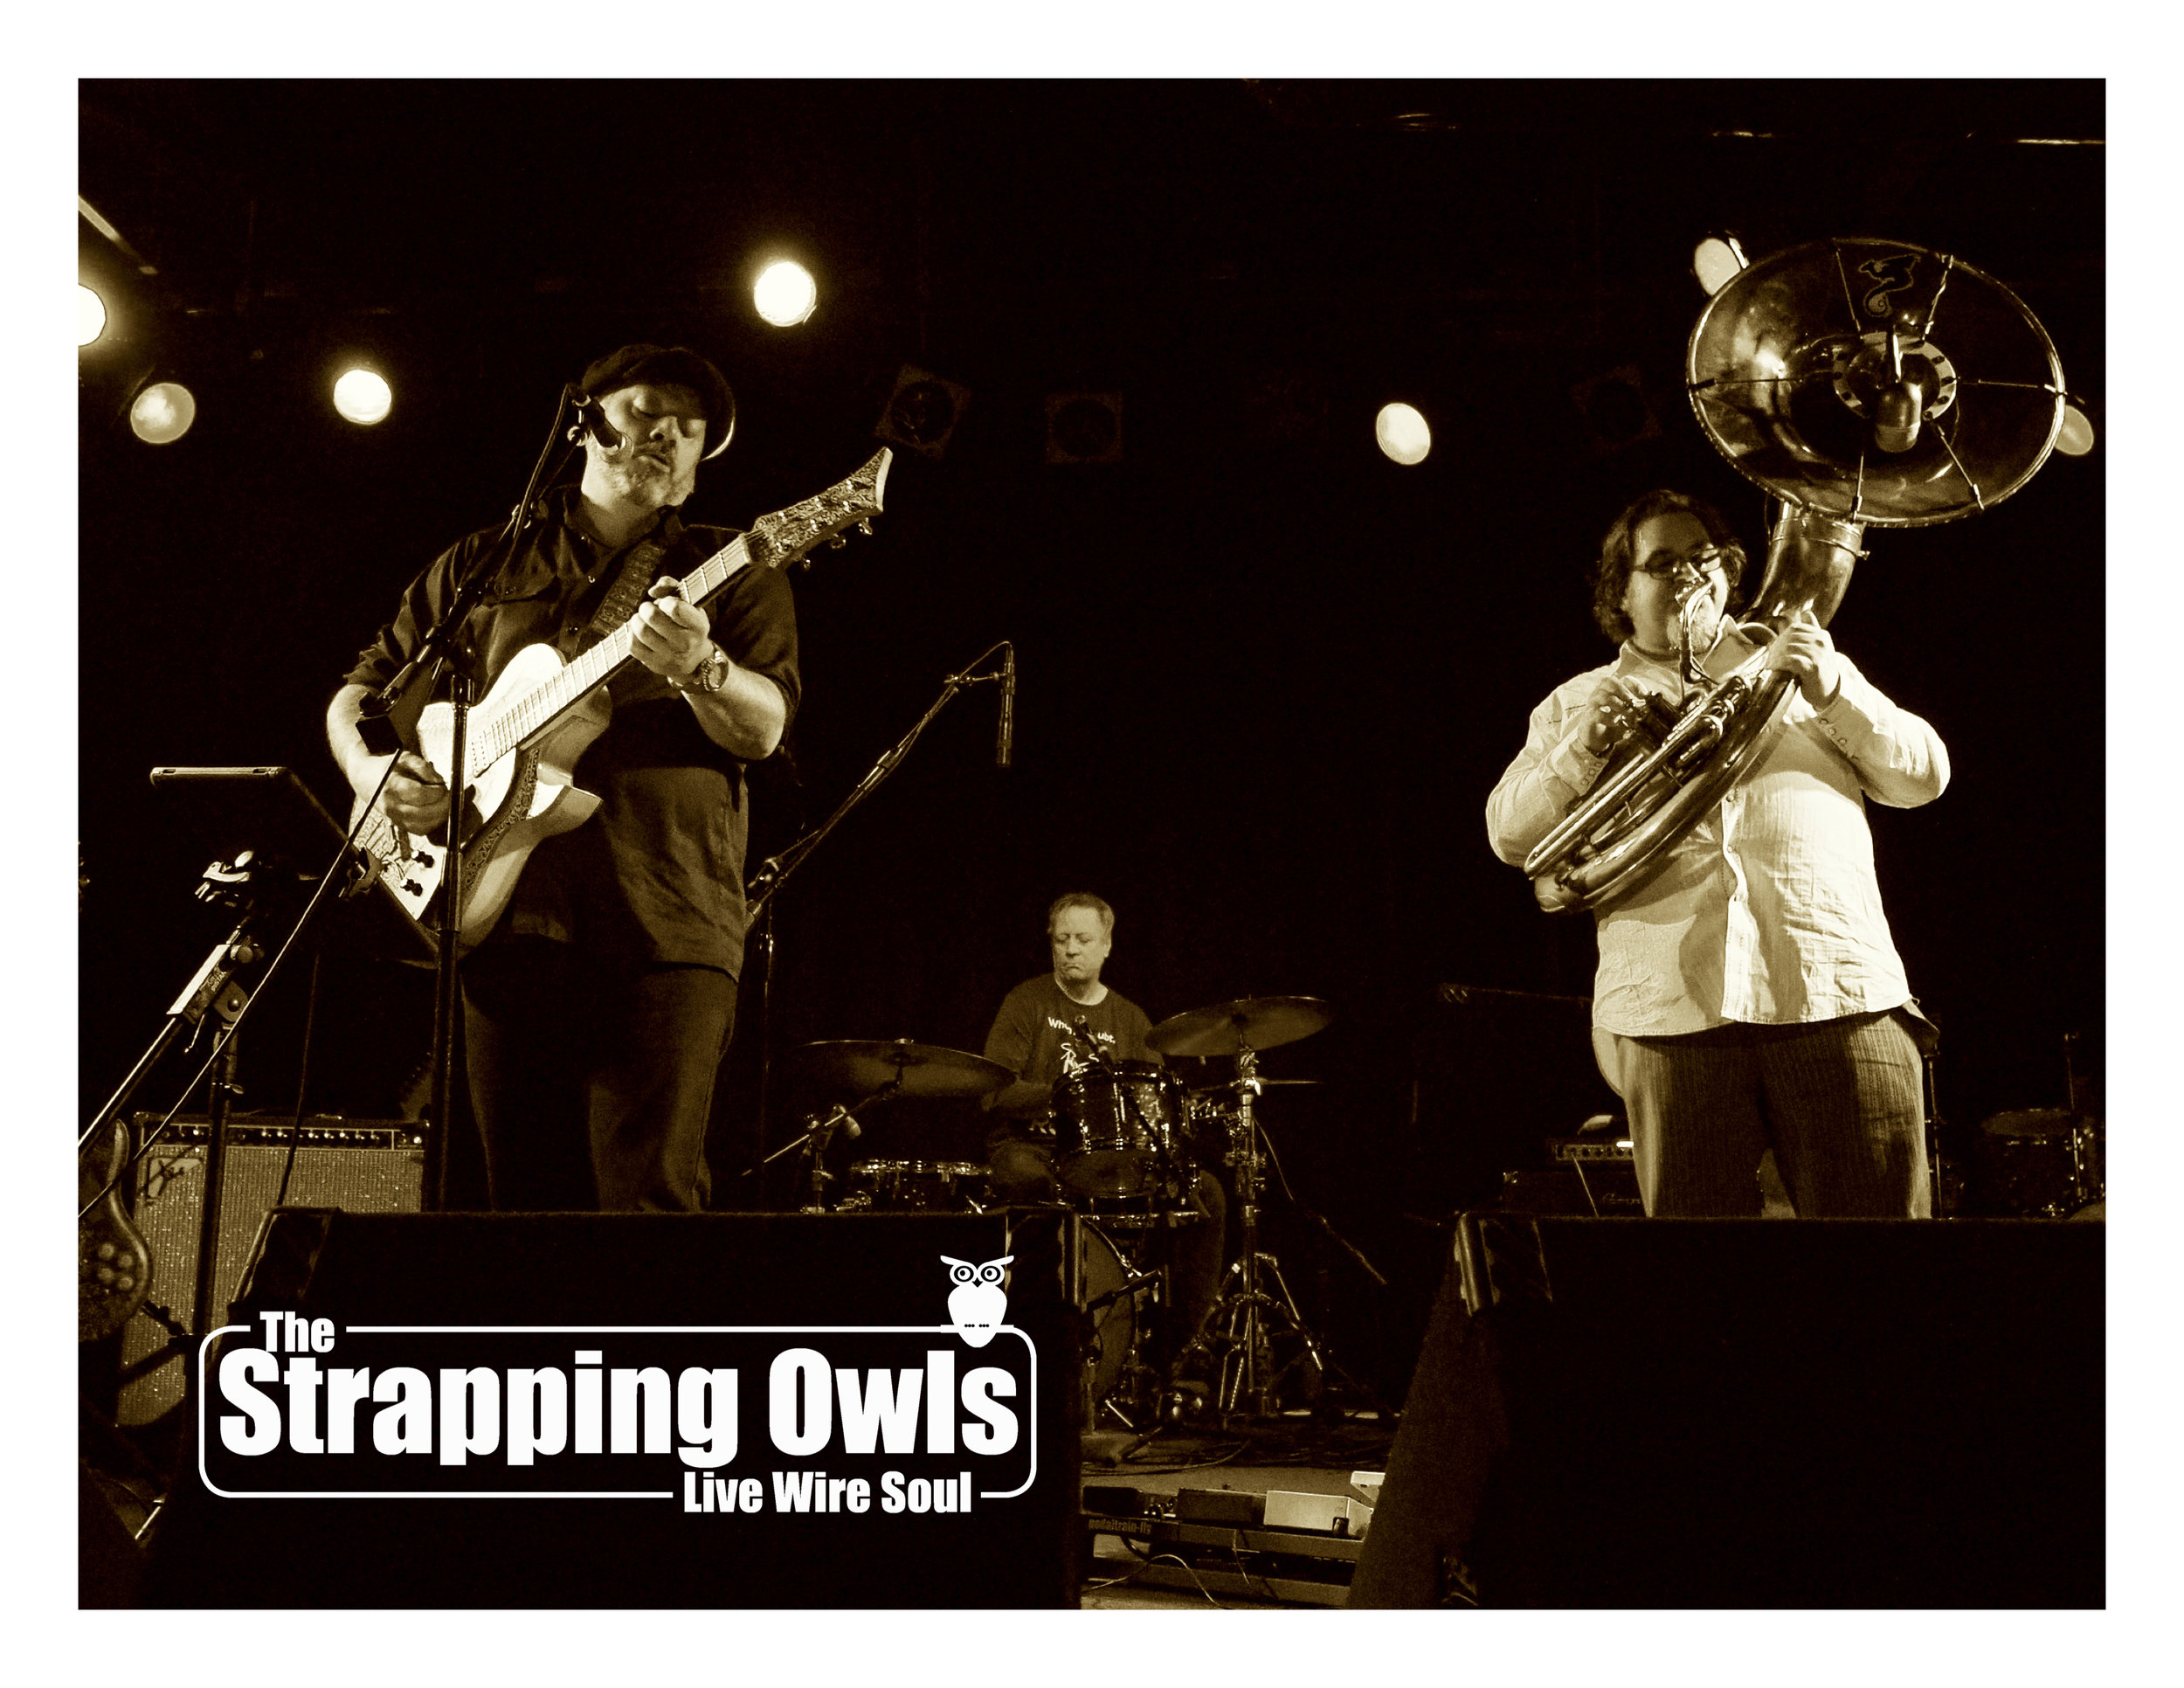 The Strapping Owls Press Photo | Sepia 3 | 2018.jpg